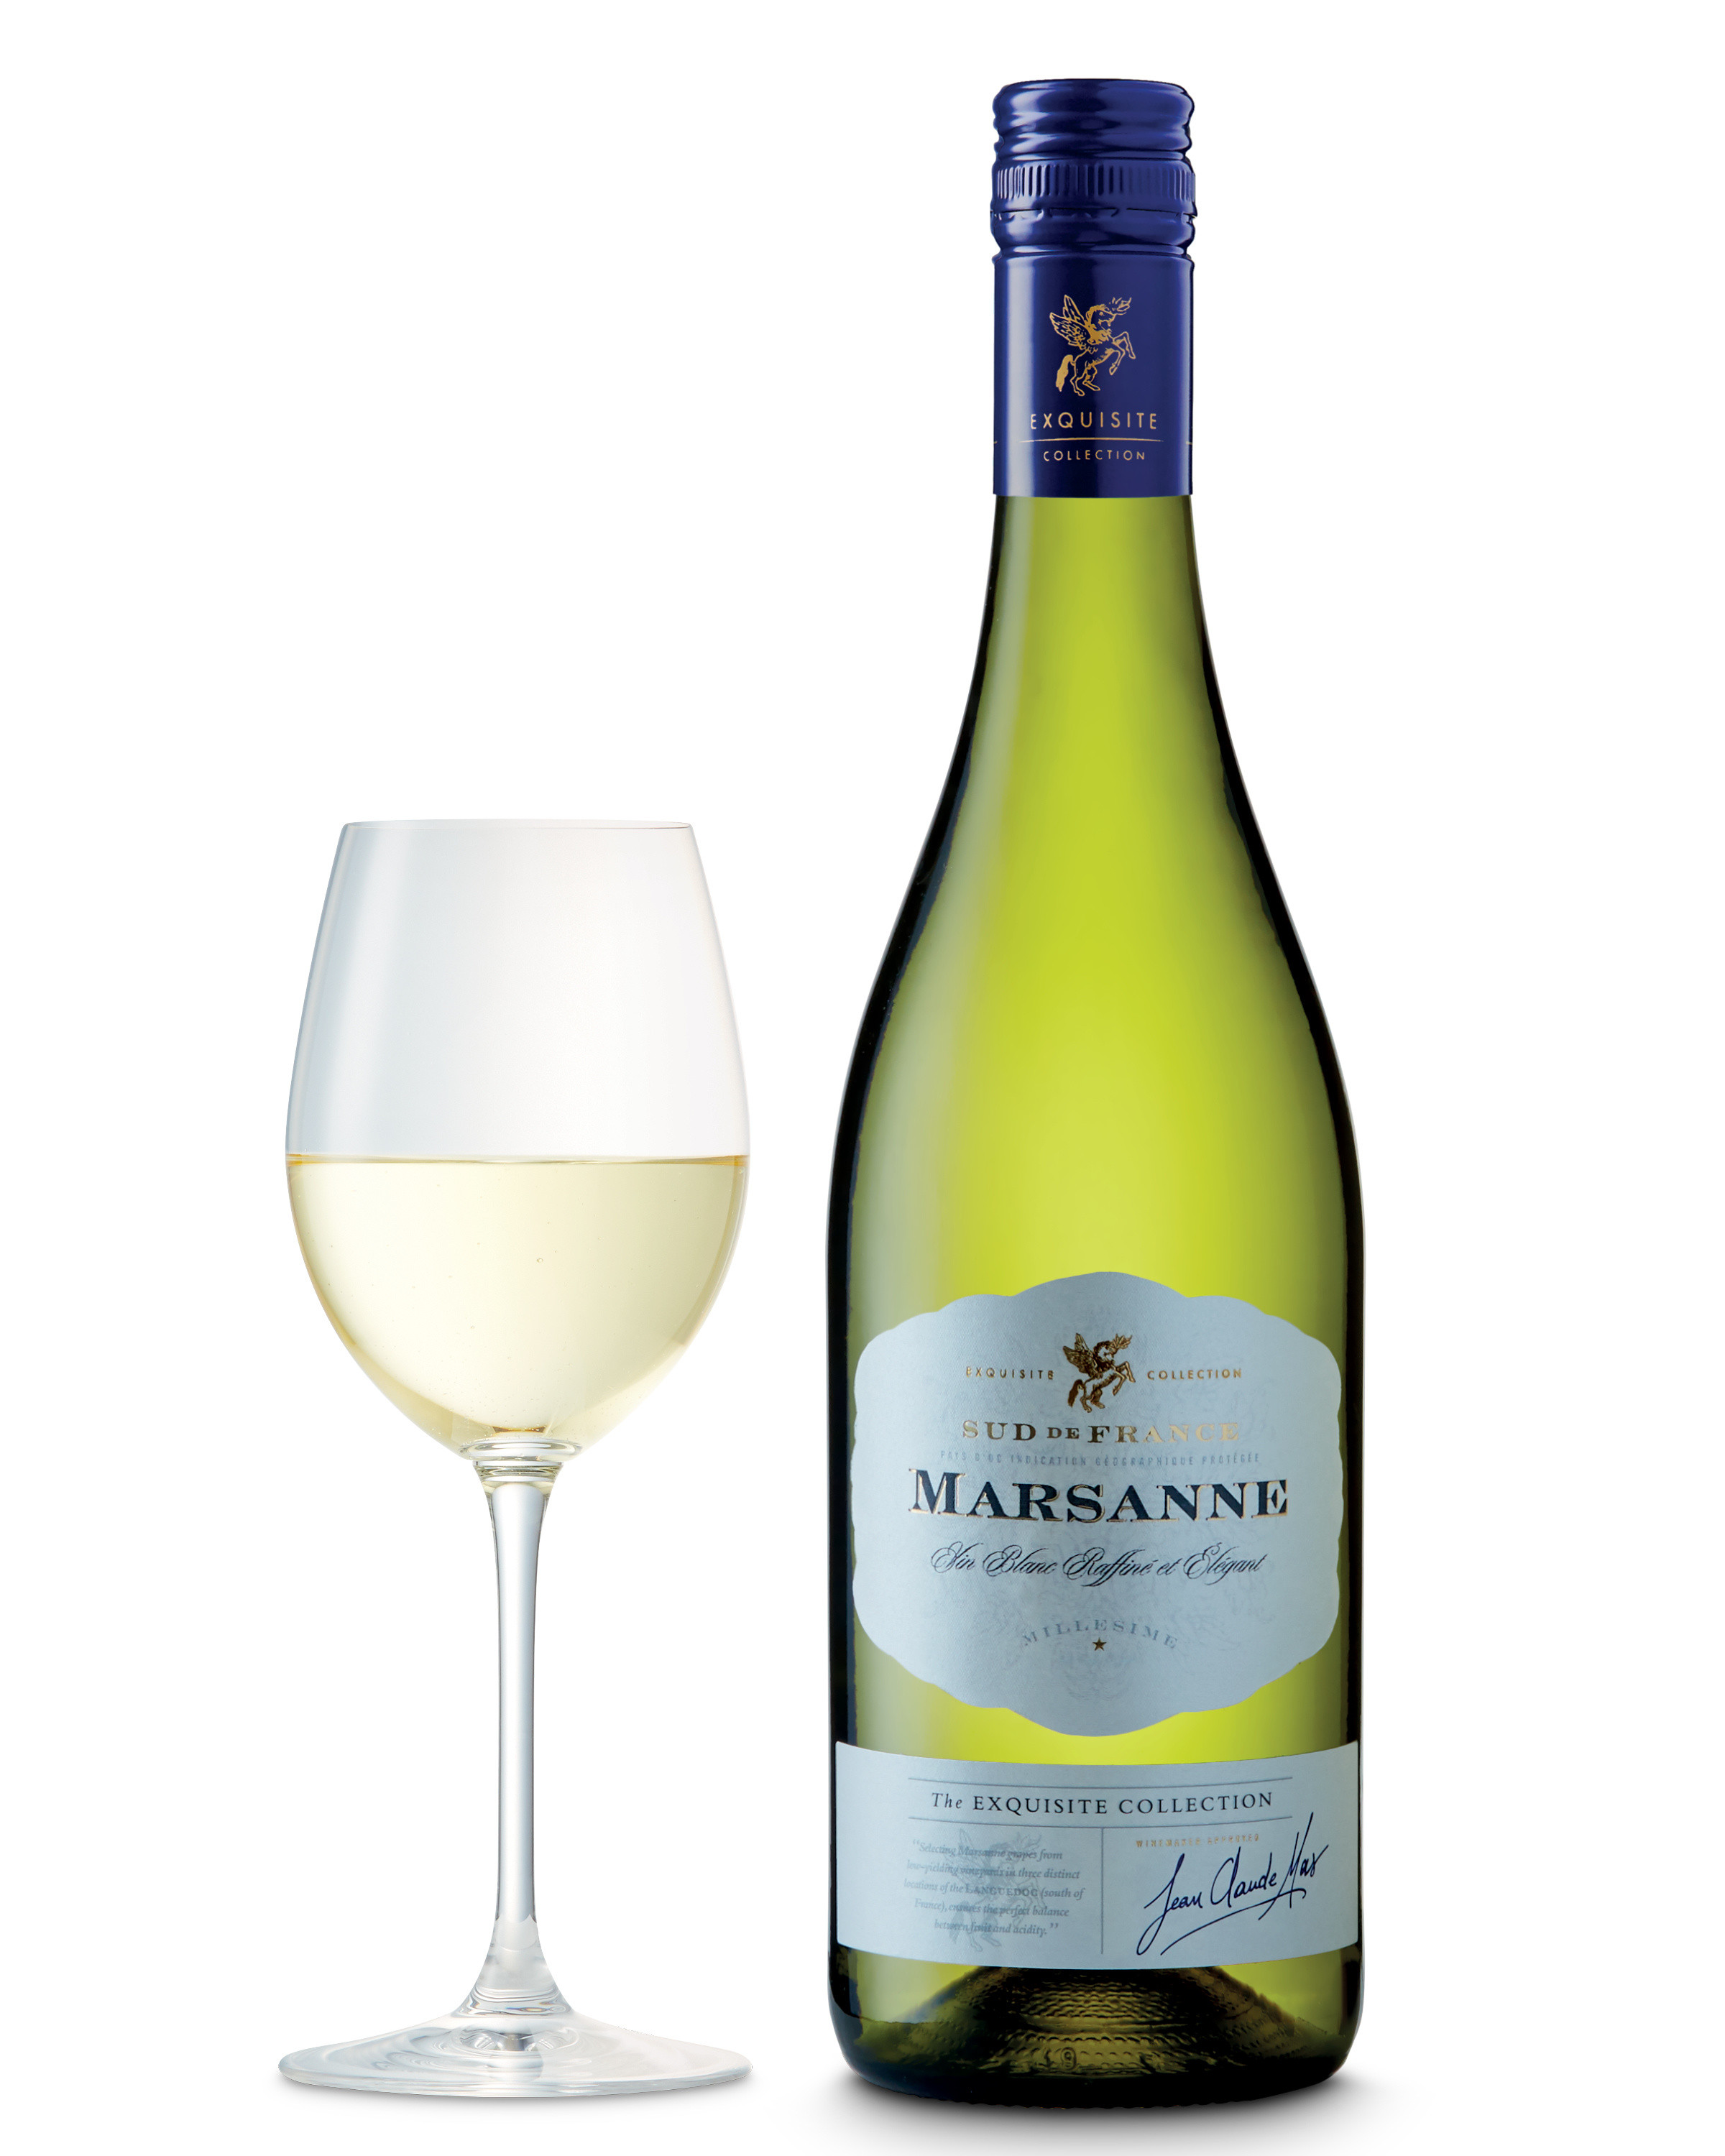 Aldi The Exquisite Collection Marsanne 2015